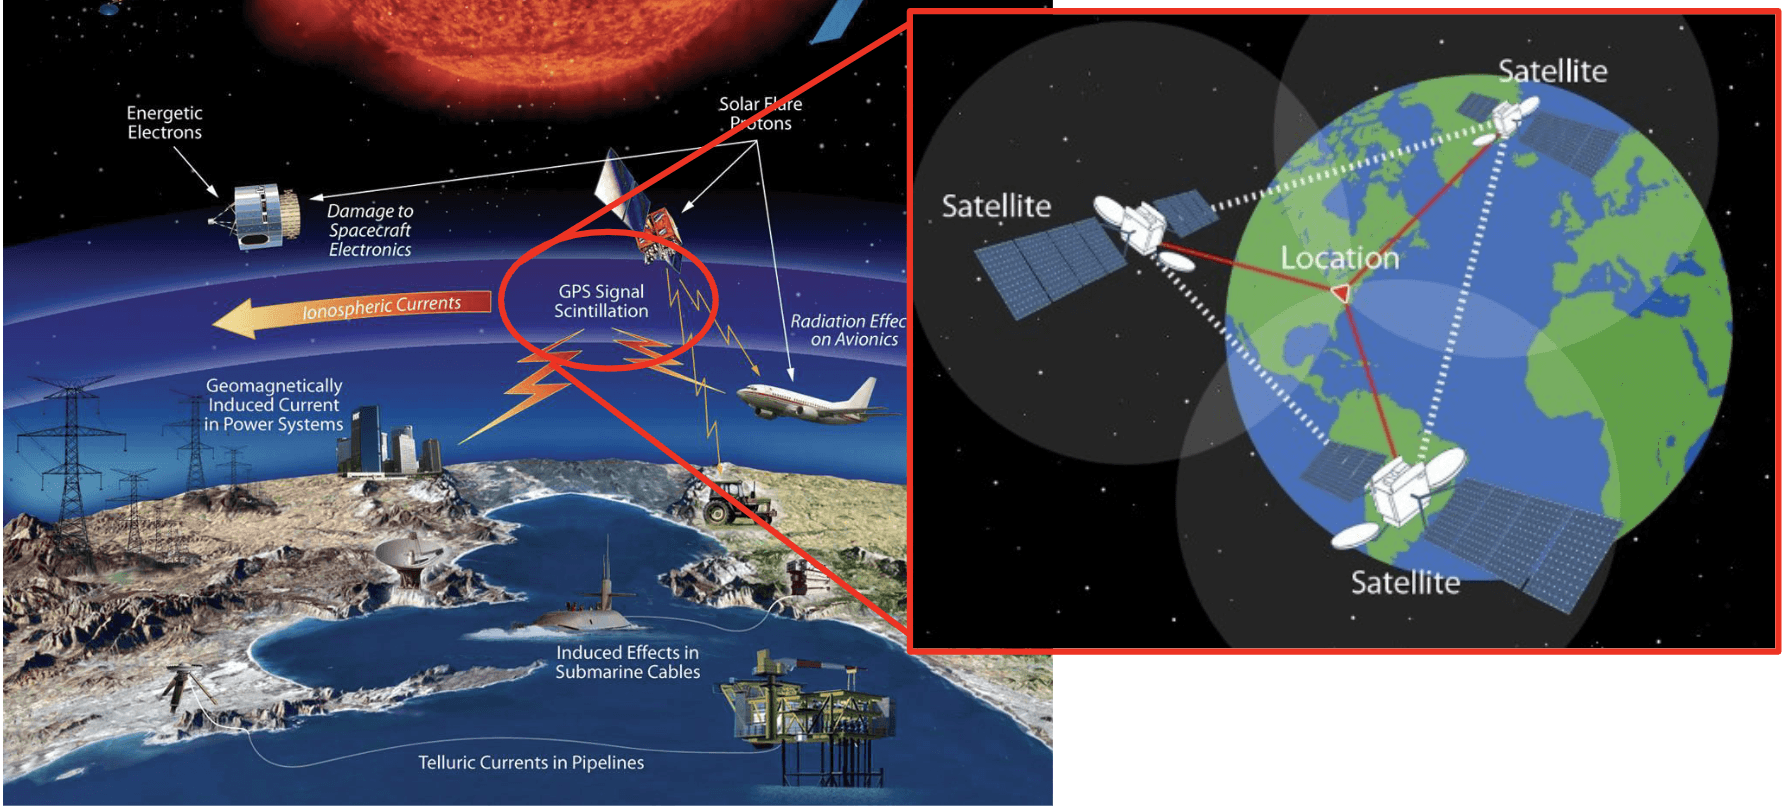 Figure 1: Scintillations in the atmosphere greatly affect GPS reliability. The NASA FDL team is creating computer models to predict these disturbances to minimize disruption of this critical technology.